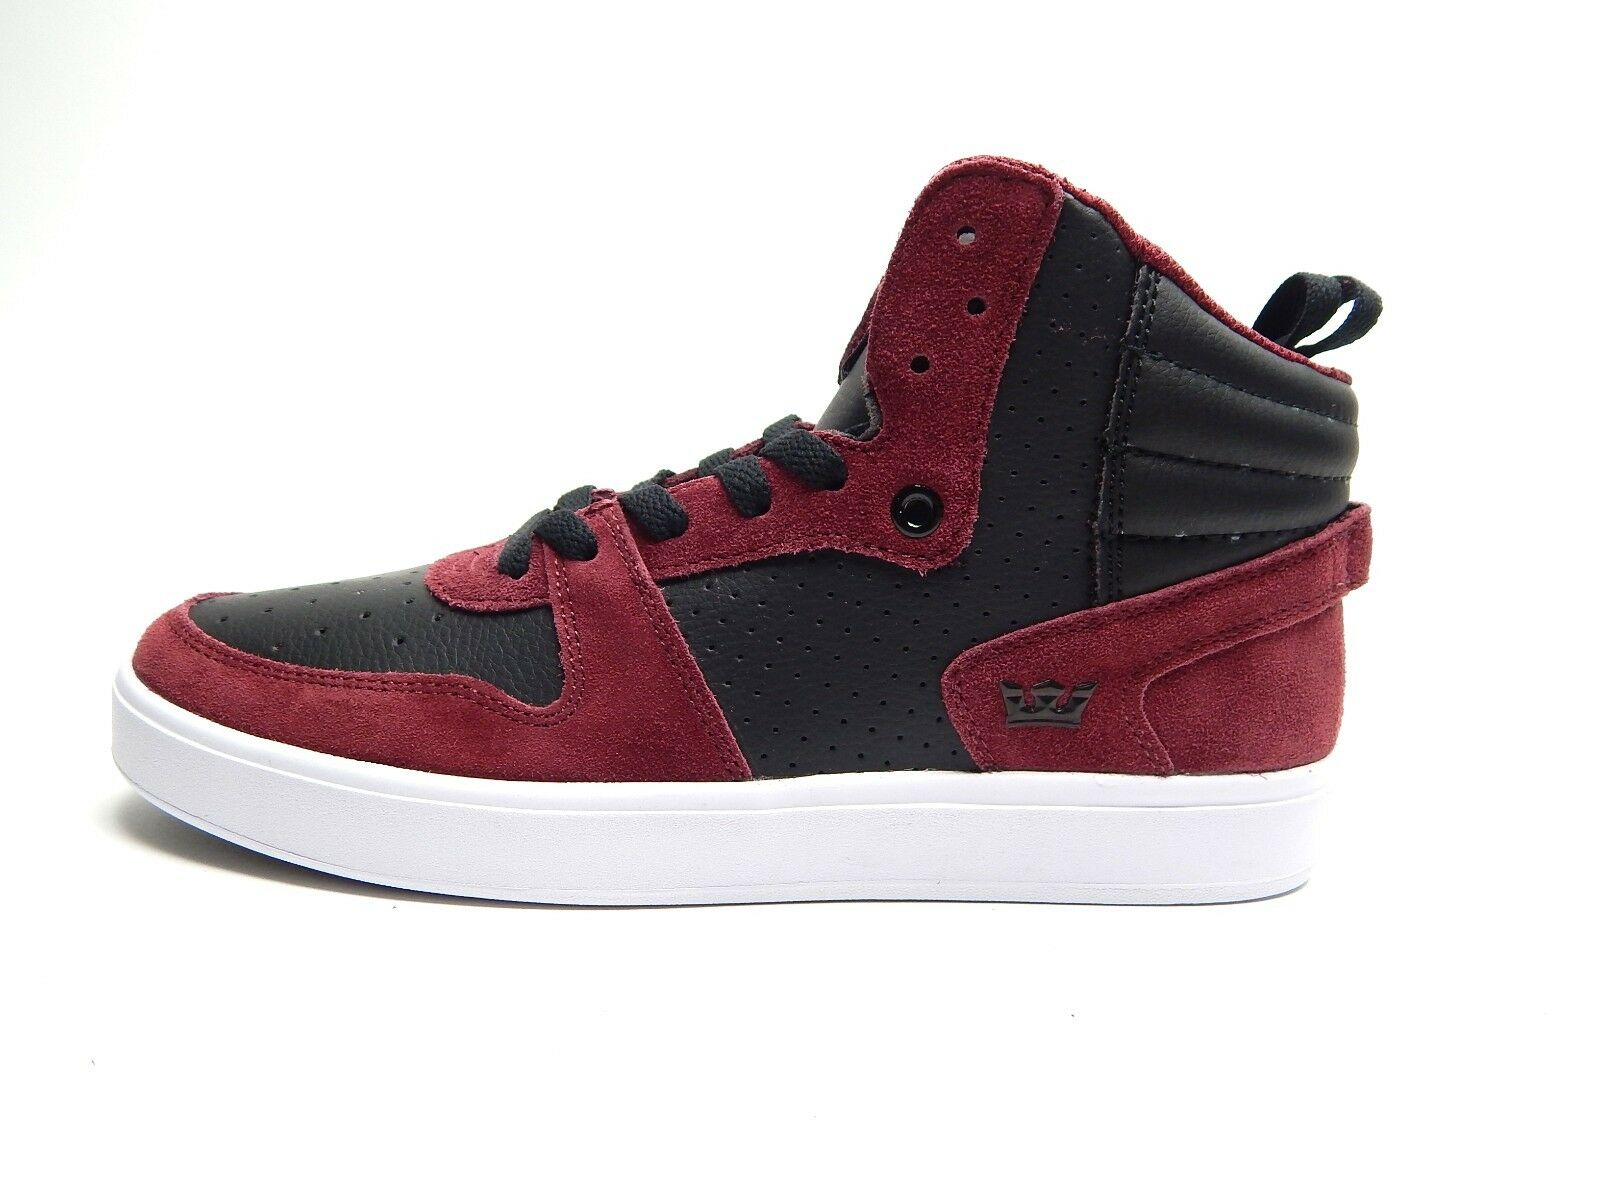 SUPRA SPHINX SIZE TAWNY BLACK Weiß MEN Schuhe SIZE SPHINX 8 TO 14 ddf08c